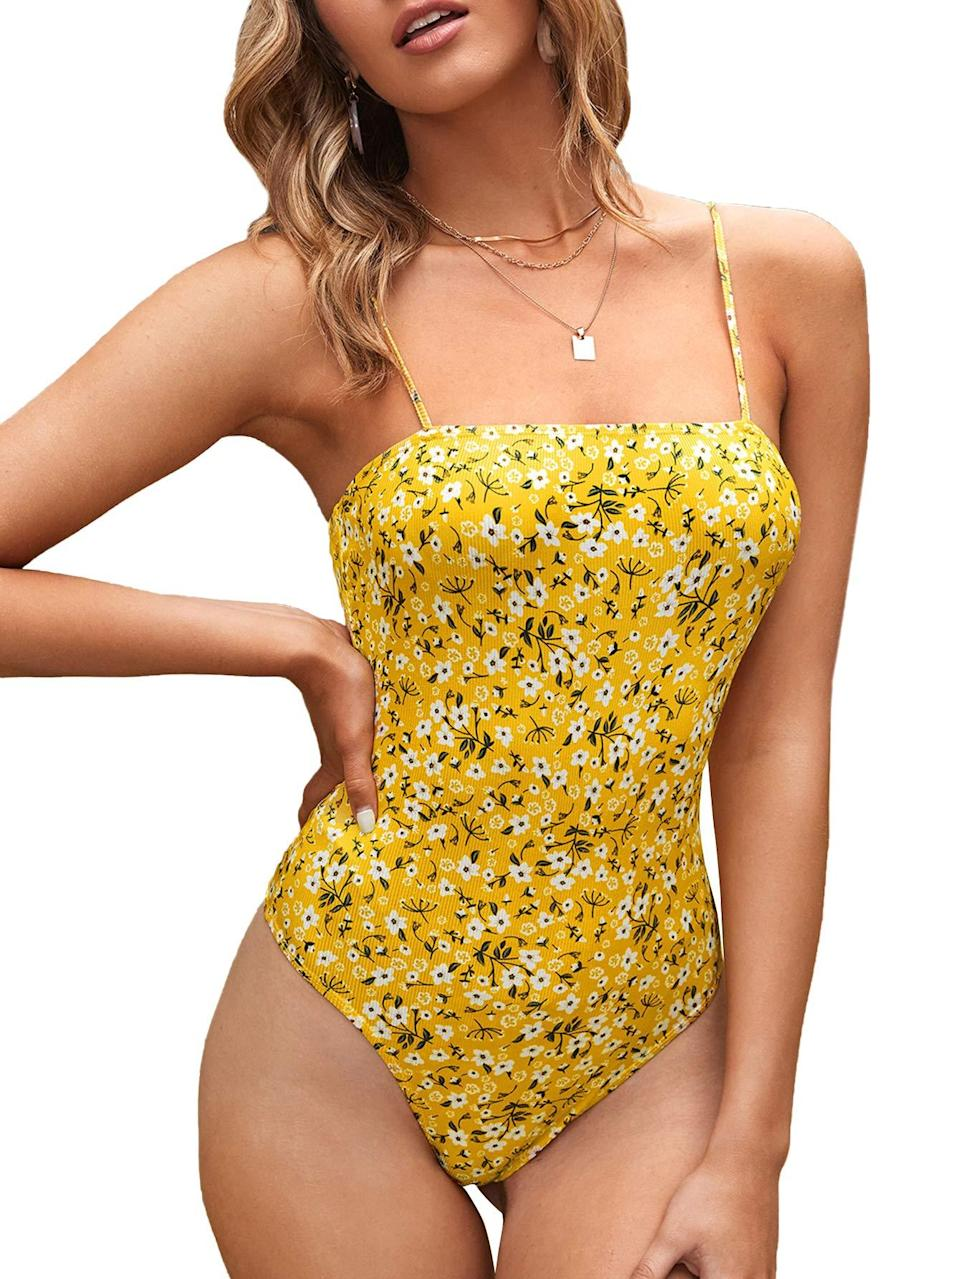 """<h2>Verdusa Spaghetti Strap Ribbed Cami Bodysuit</h2><br>The ditsy floral print on this dainty piece makes it feel like the ultimate spring buy.<br><br><strong>Verdusa</strong> Spaghetti Strap Ribbed Cami Bodysuit, $, available at <a href=""""https://amzn.to/3hiMiYf"""" rel=""""nofollow noopener"""" target=""""_blank"""" data-ylk=""""slk:Amazon"""" class=""""link rapid-noclick-resp"""">Amazon</a>"""